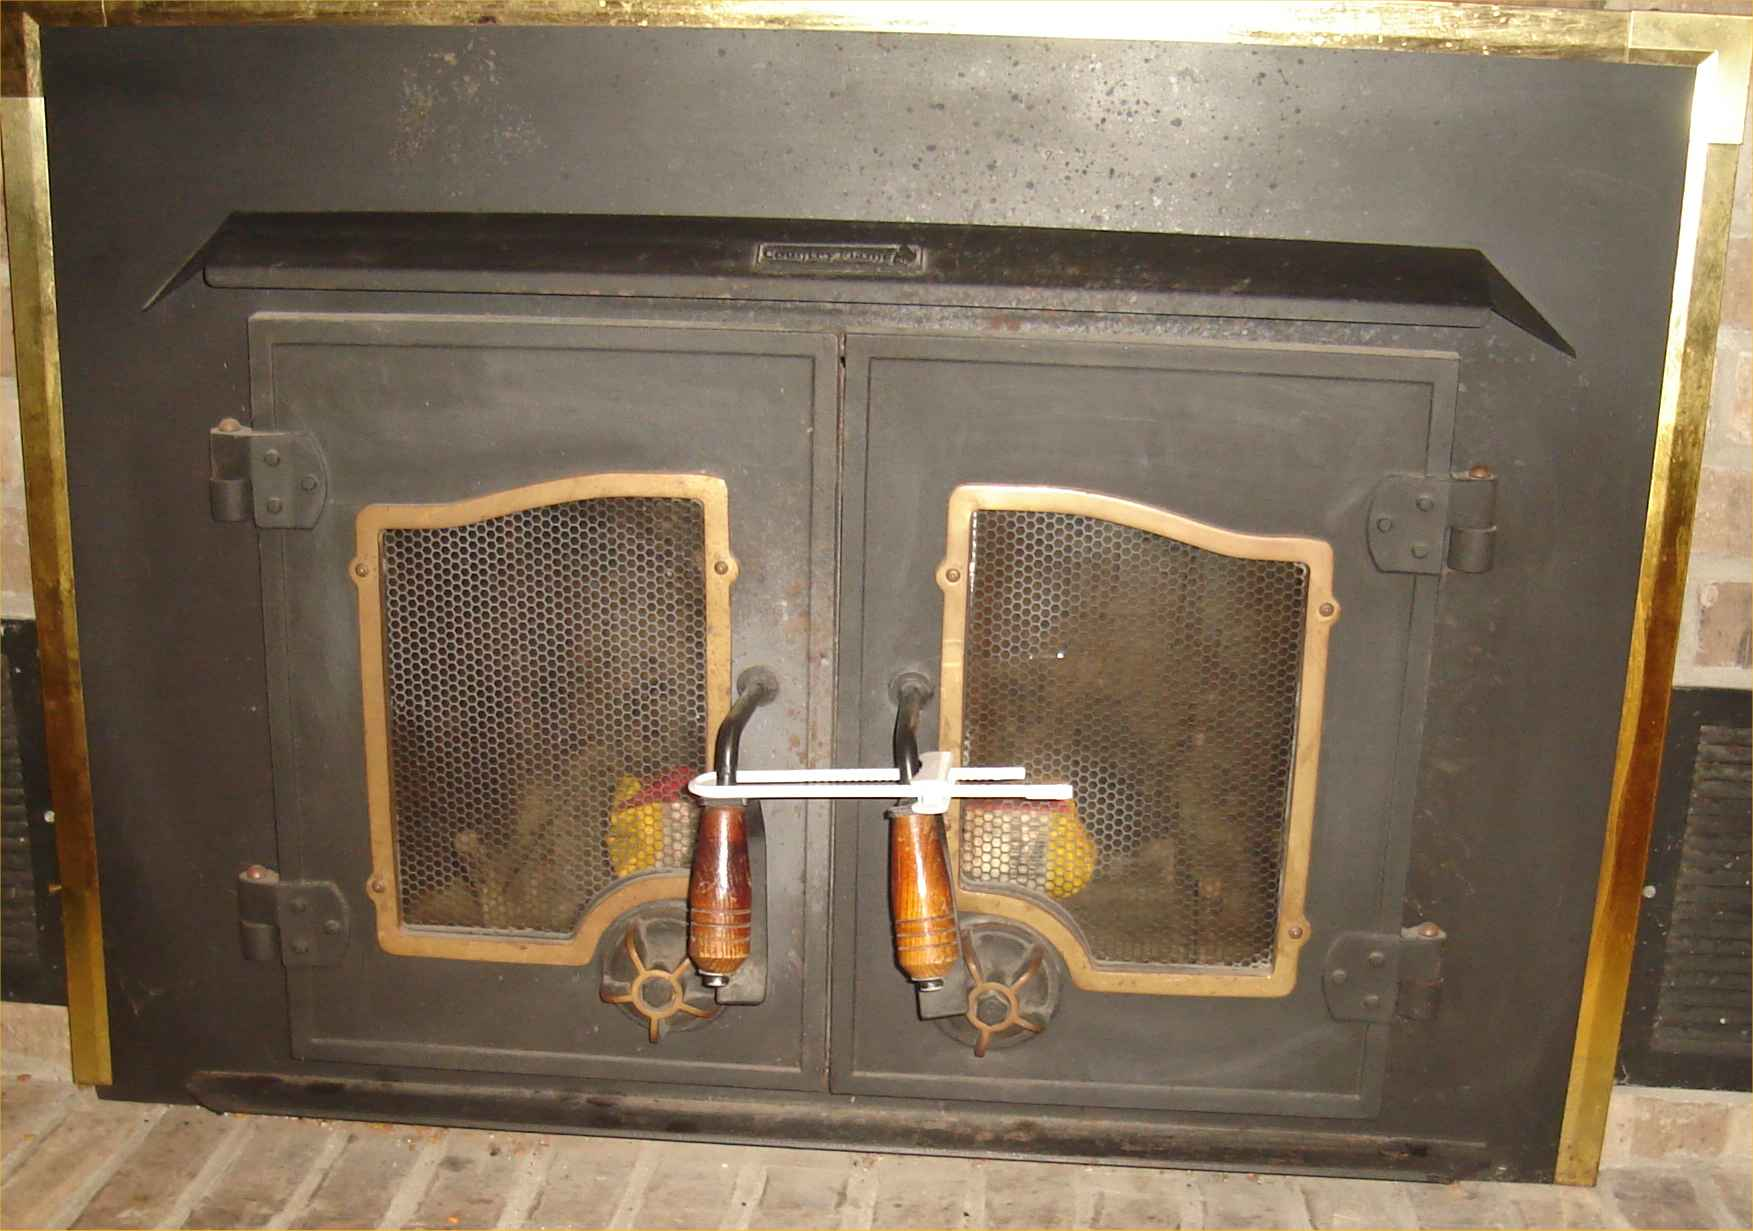 Childproofing the fireplace